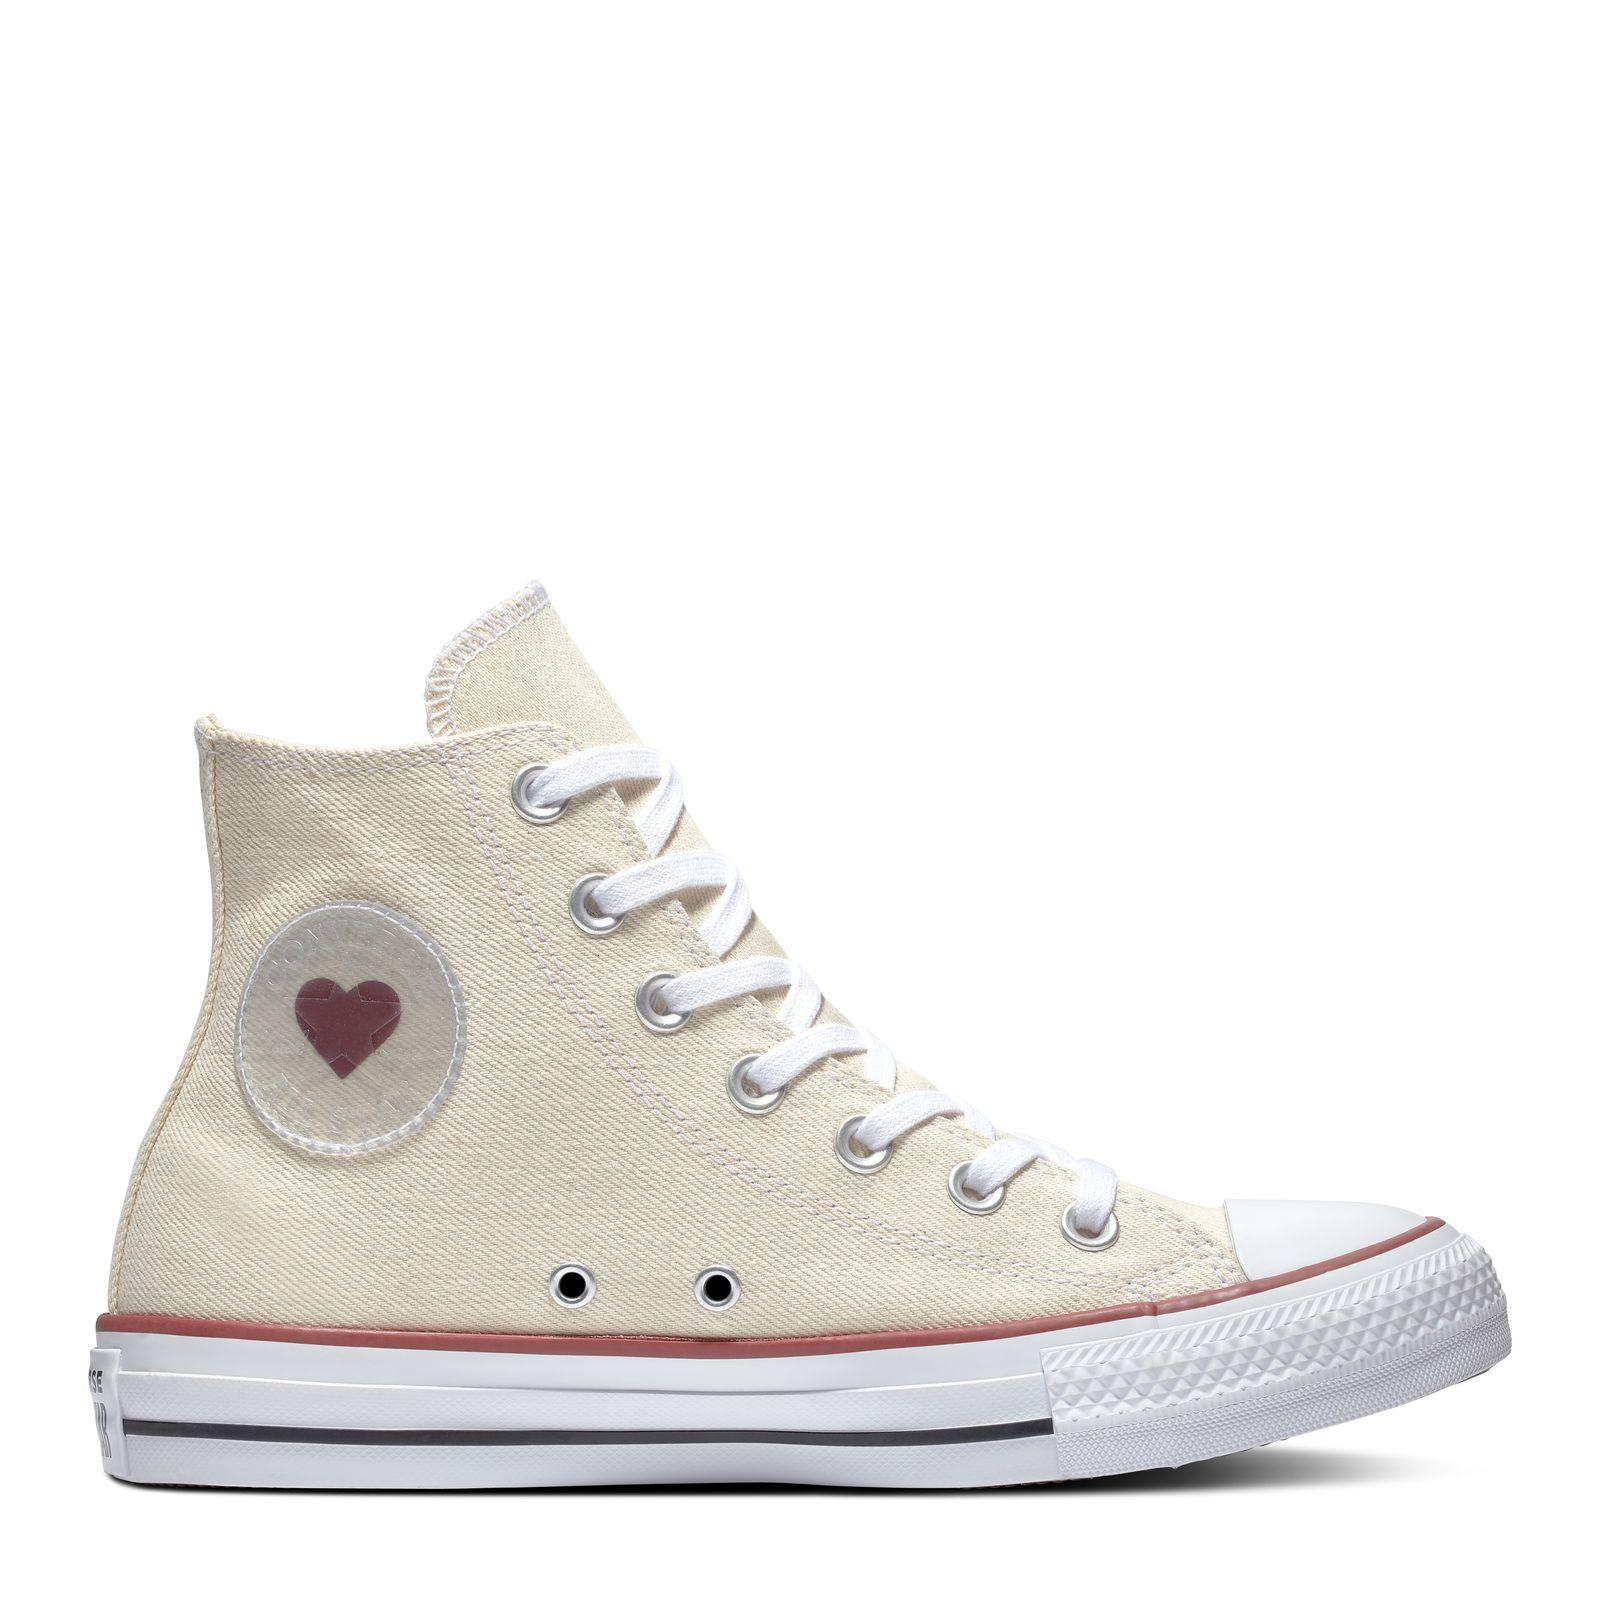 db42b072bb72 CONVERSE CHUCK TAYLOR ALL STAR DENIM LOVE HI - NATURAL WHITE GARNET -  163304C